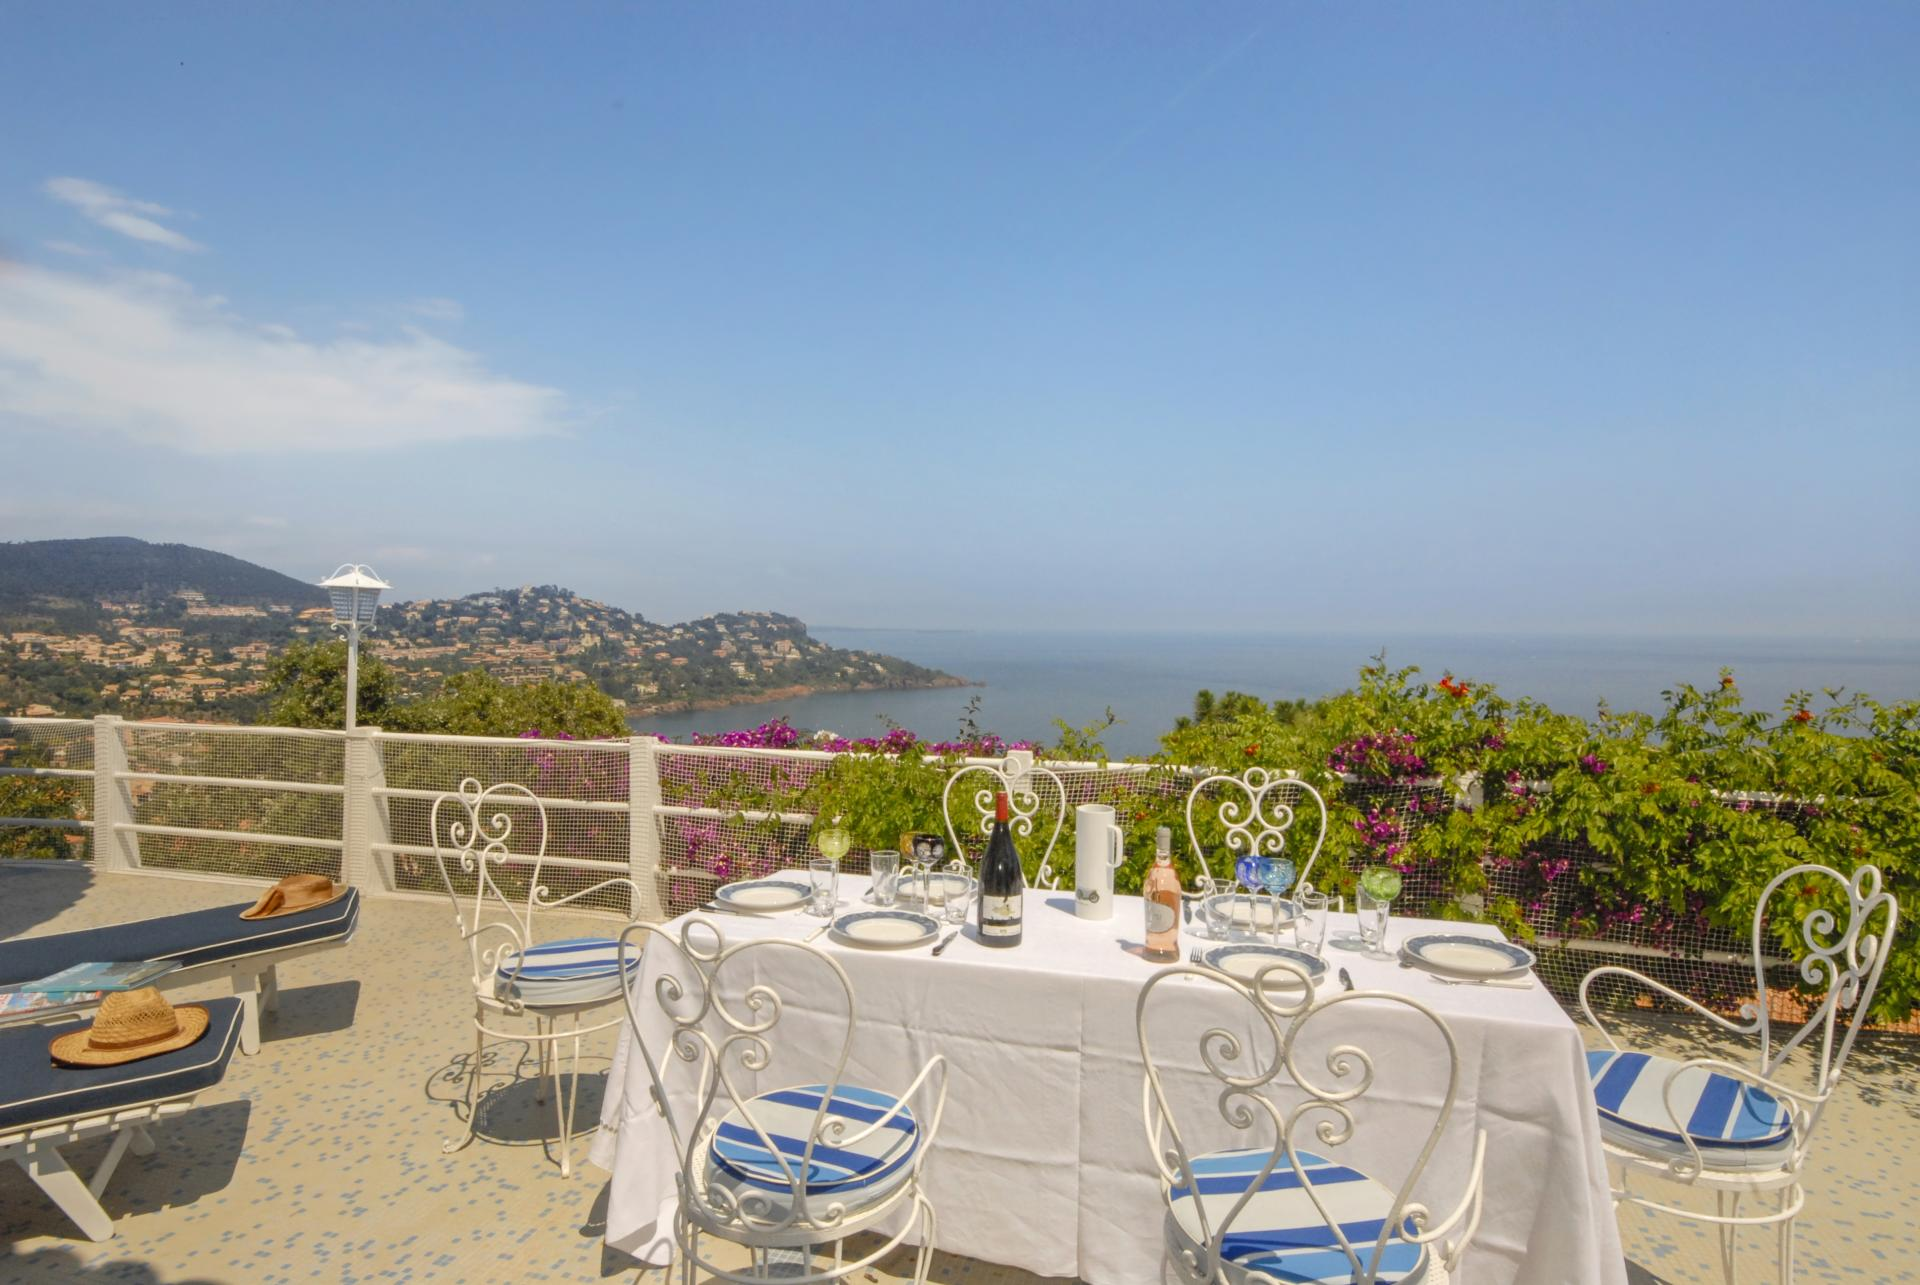 Outdoor Dining Table, L'Oursin, Le Trayas, Cote d'Azur.